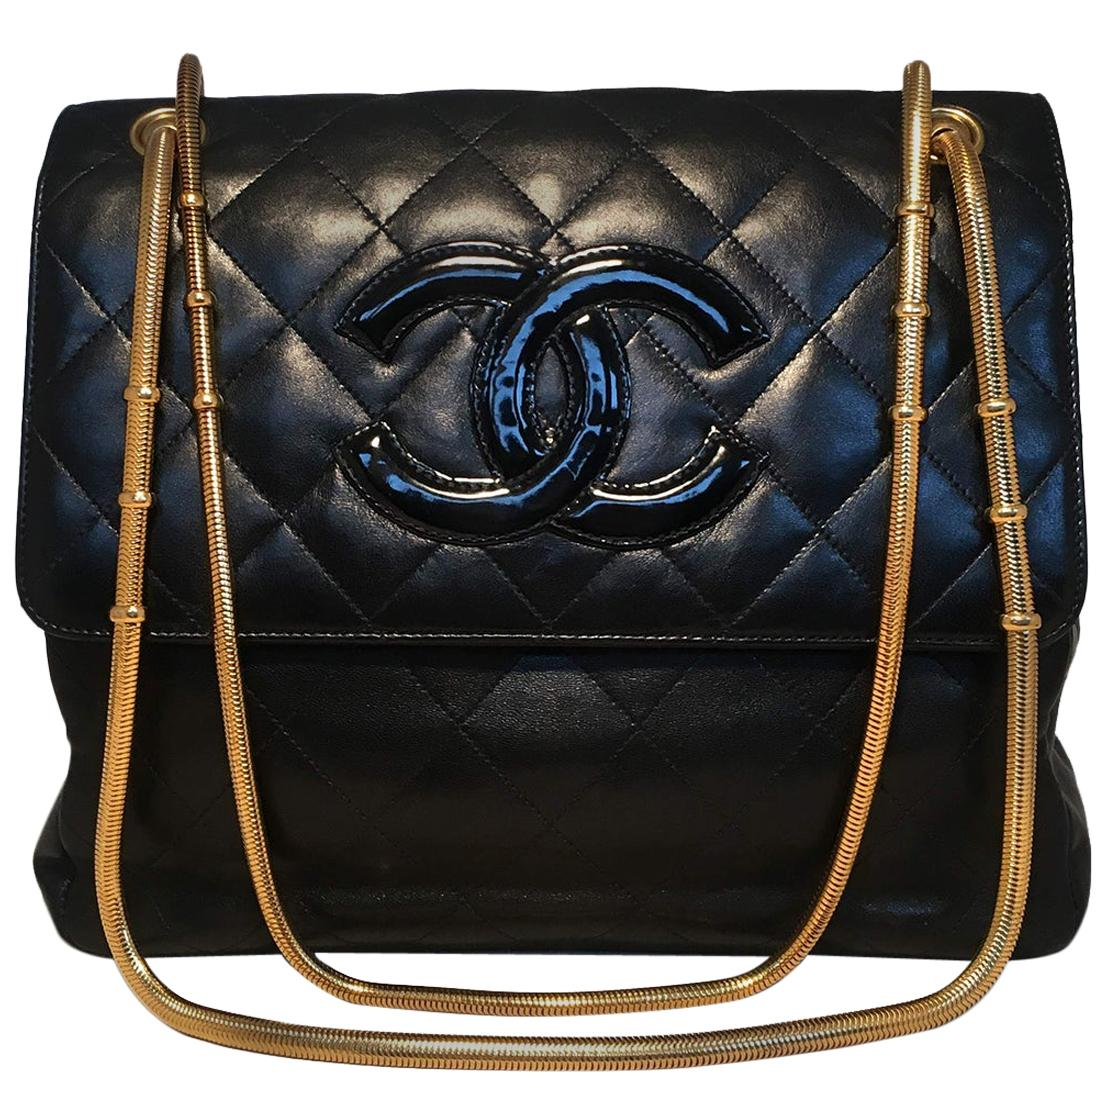 20566a59aee7c2 Vintage Chanel Purses and Handbags at 1stdibs